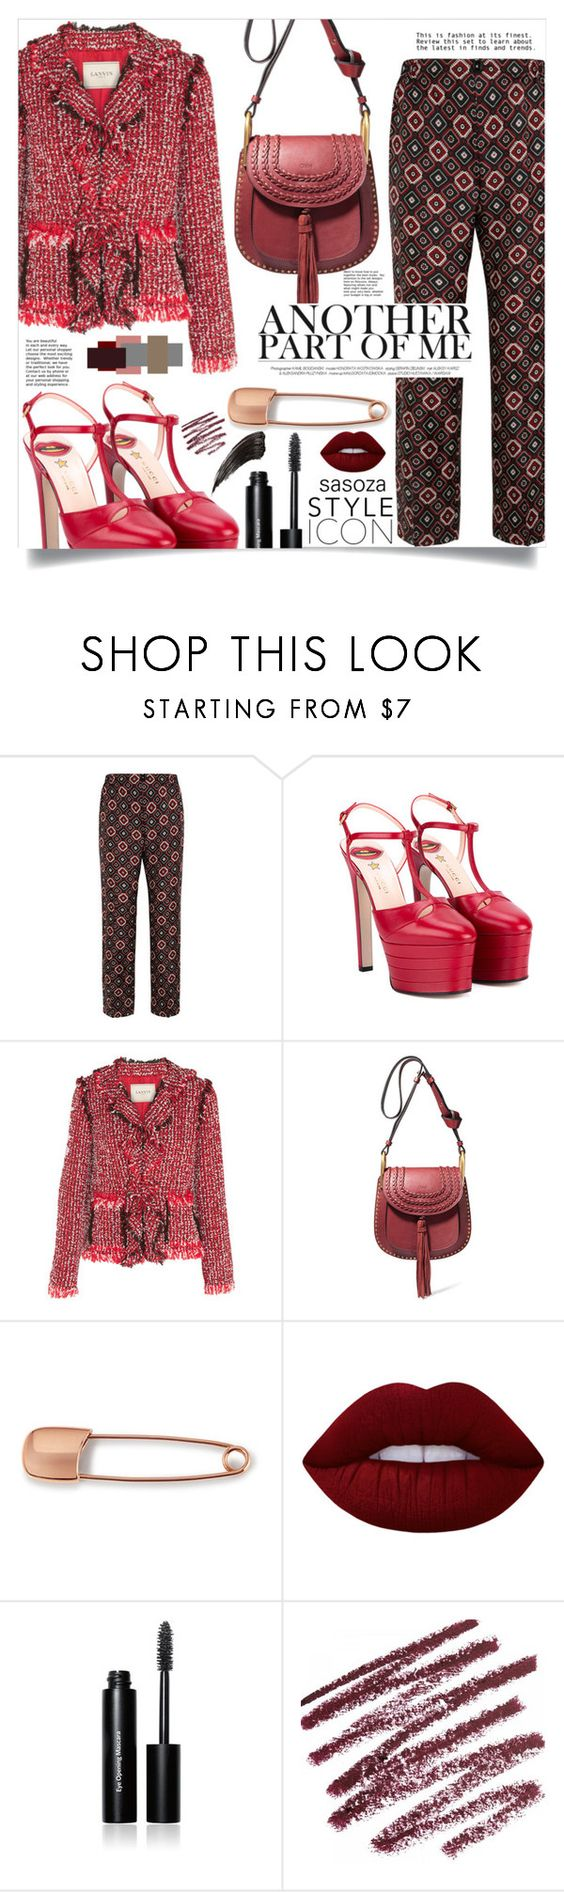 """another part of me !! by Sasoza"" by sasooza ❤ liked on Polyvore featuring F.R.S. For Restless Sleepers, Gucci, Lanvin, Chloé, Mara Hotung, Lime Crime and Bobbi Brown Cosmetics"